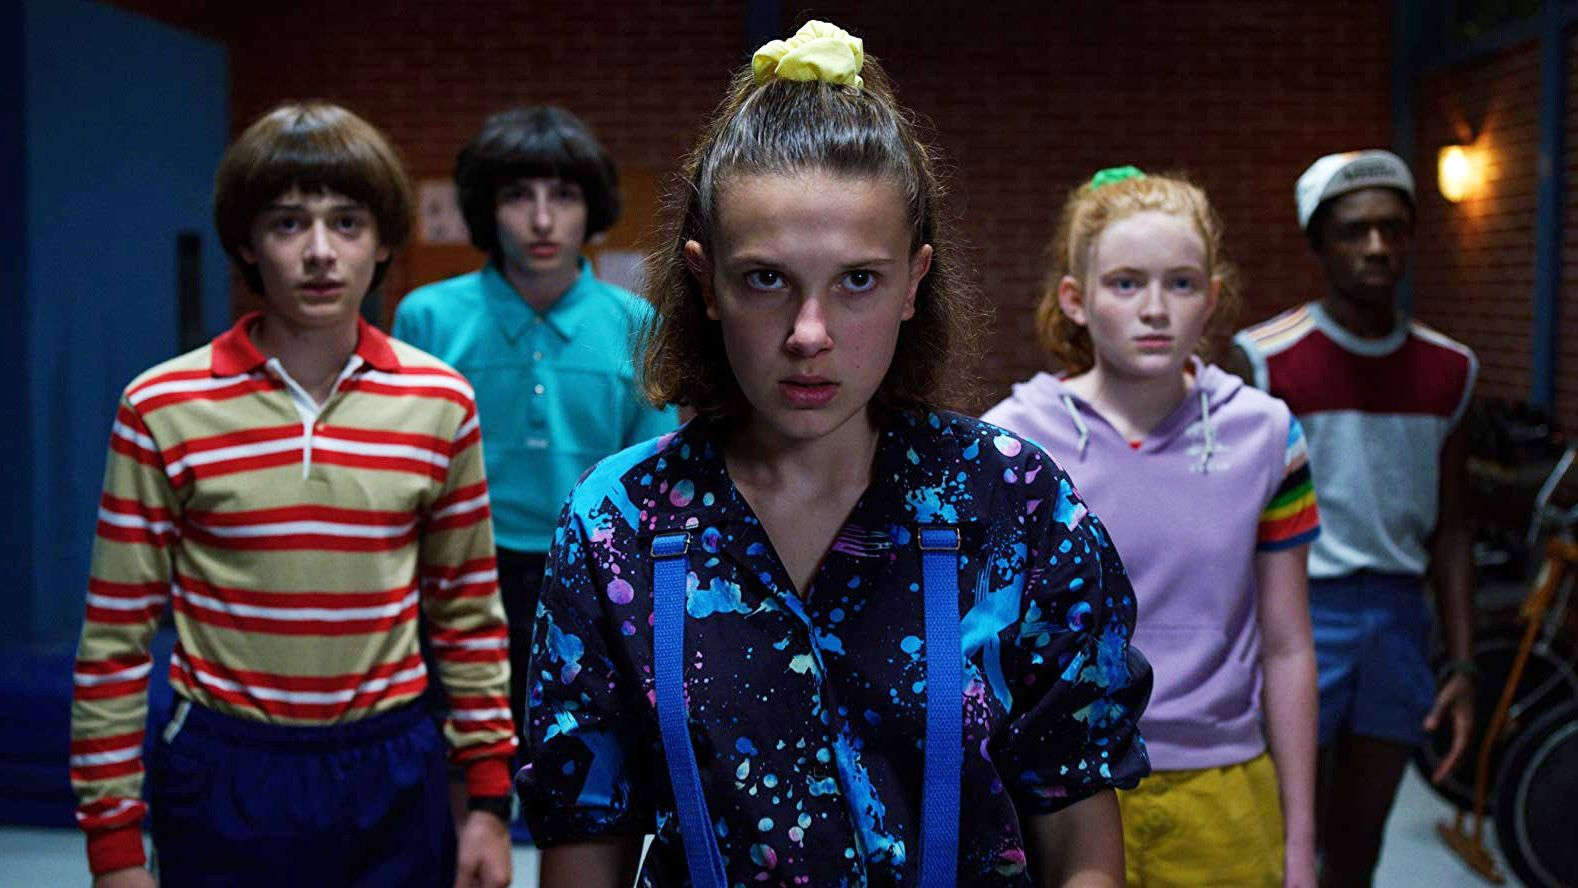 'Stranger Things' had record viewership in first four days